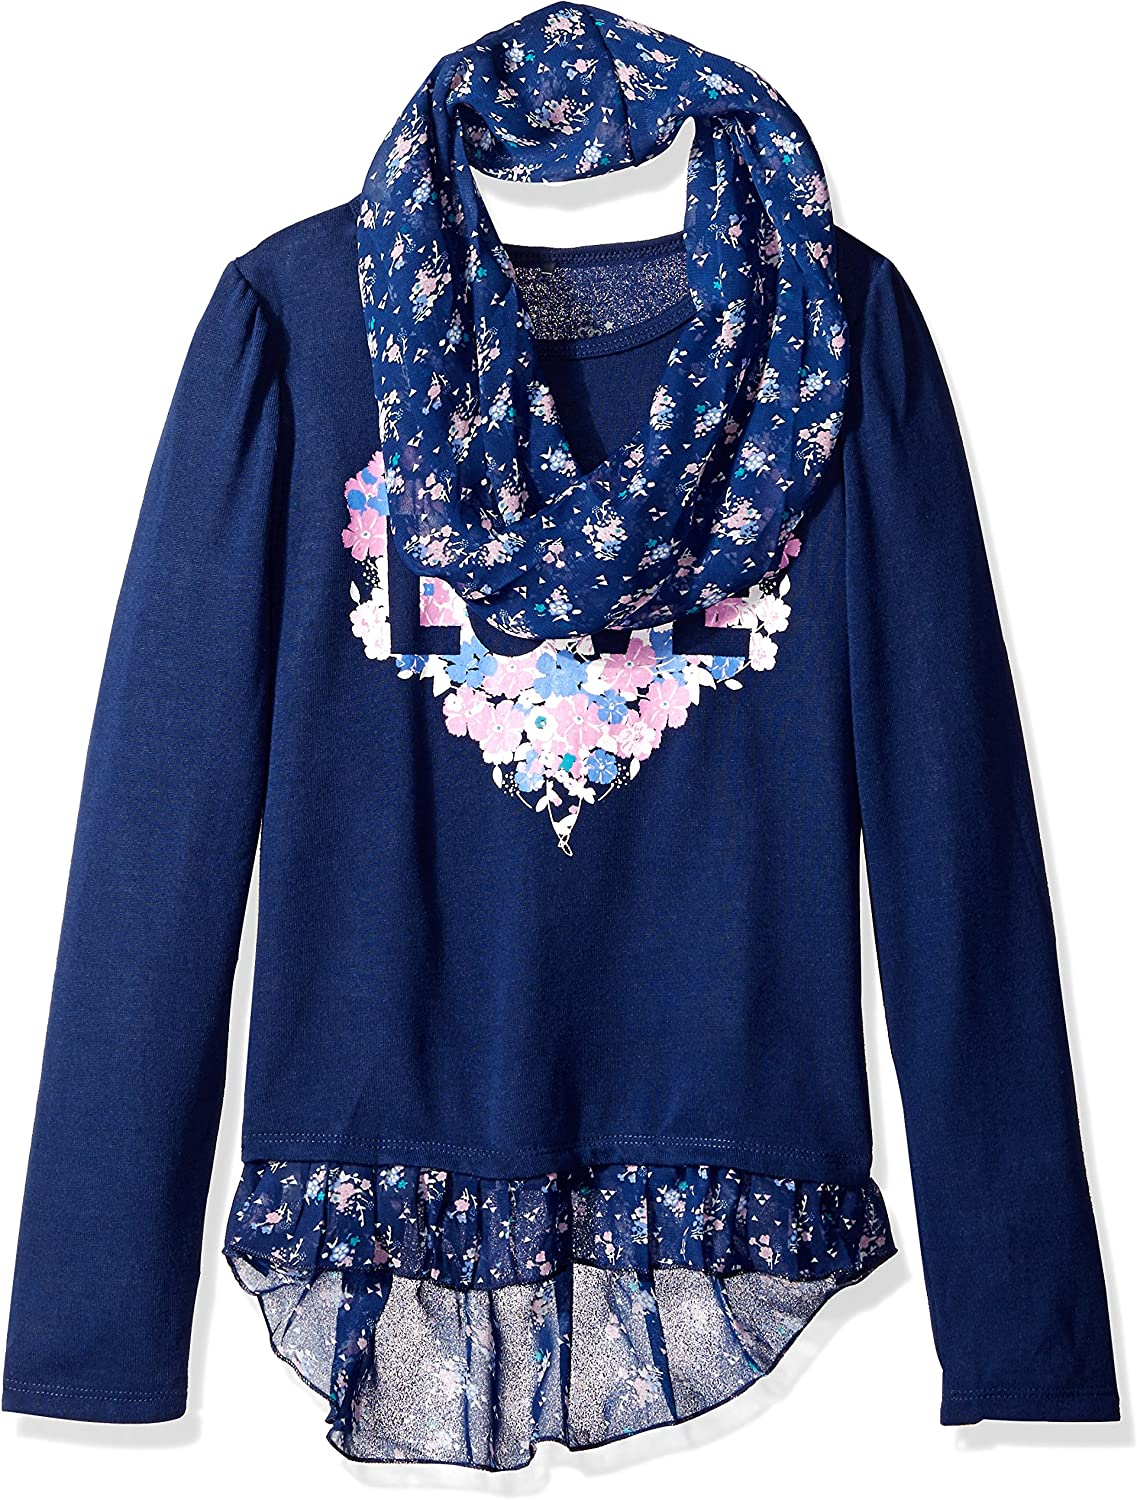 Dream Star Girls' Hacci Screen Top with Chiffon Floral Printed Scarf and Hang